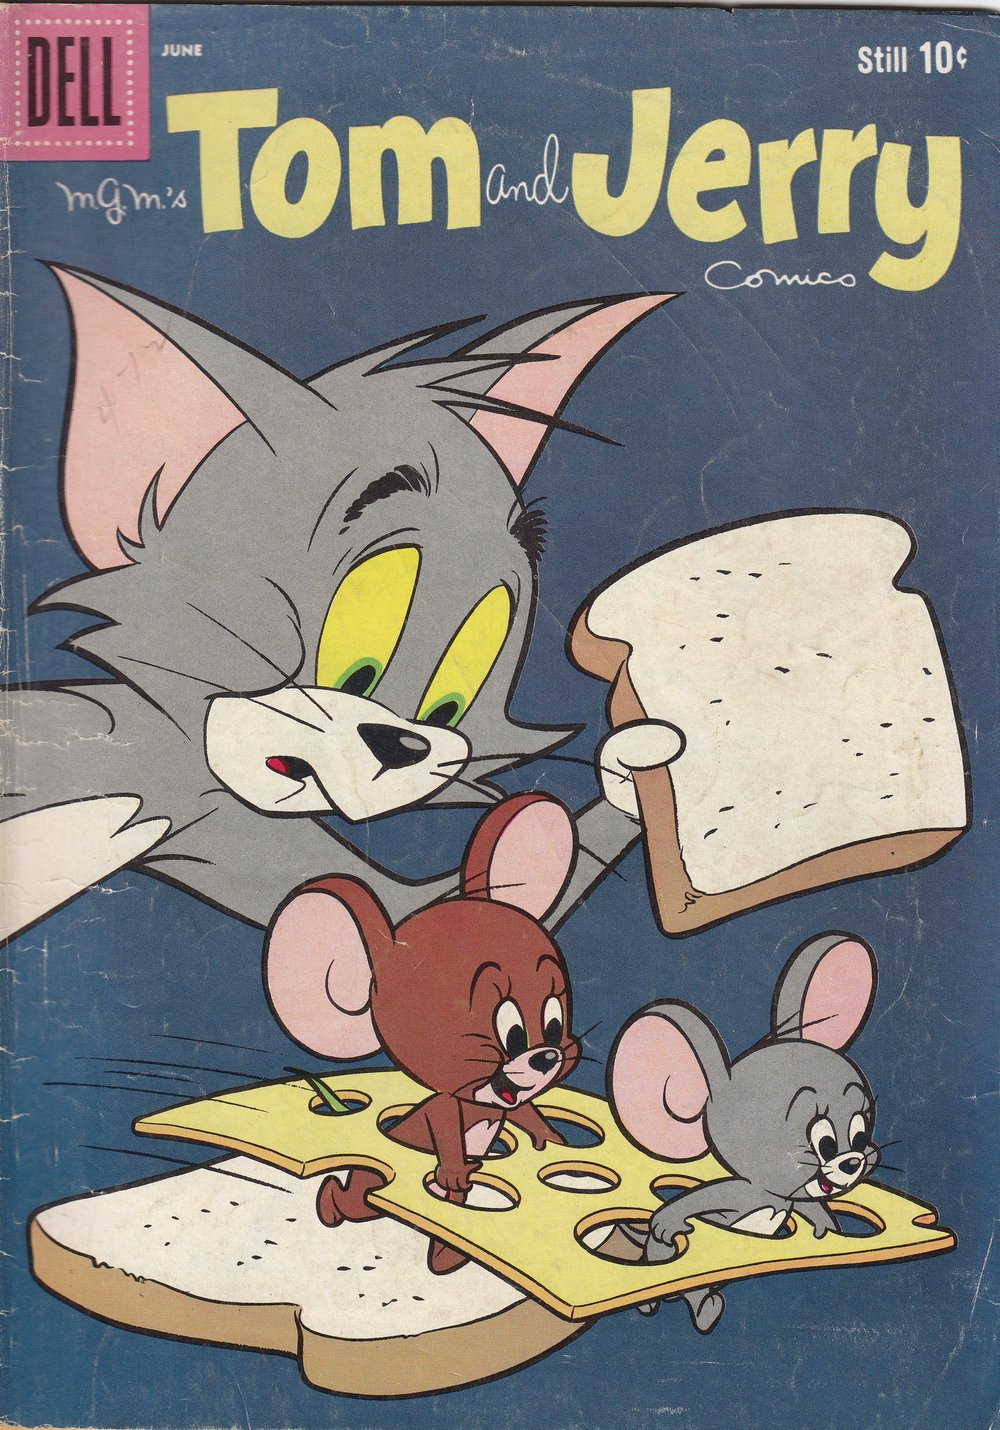 Tom & Jerry Comics issue 191 - Page 1